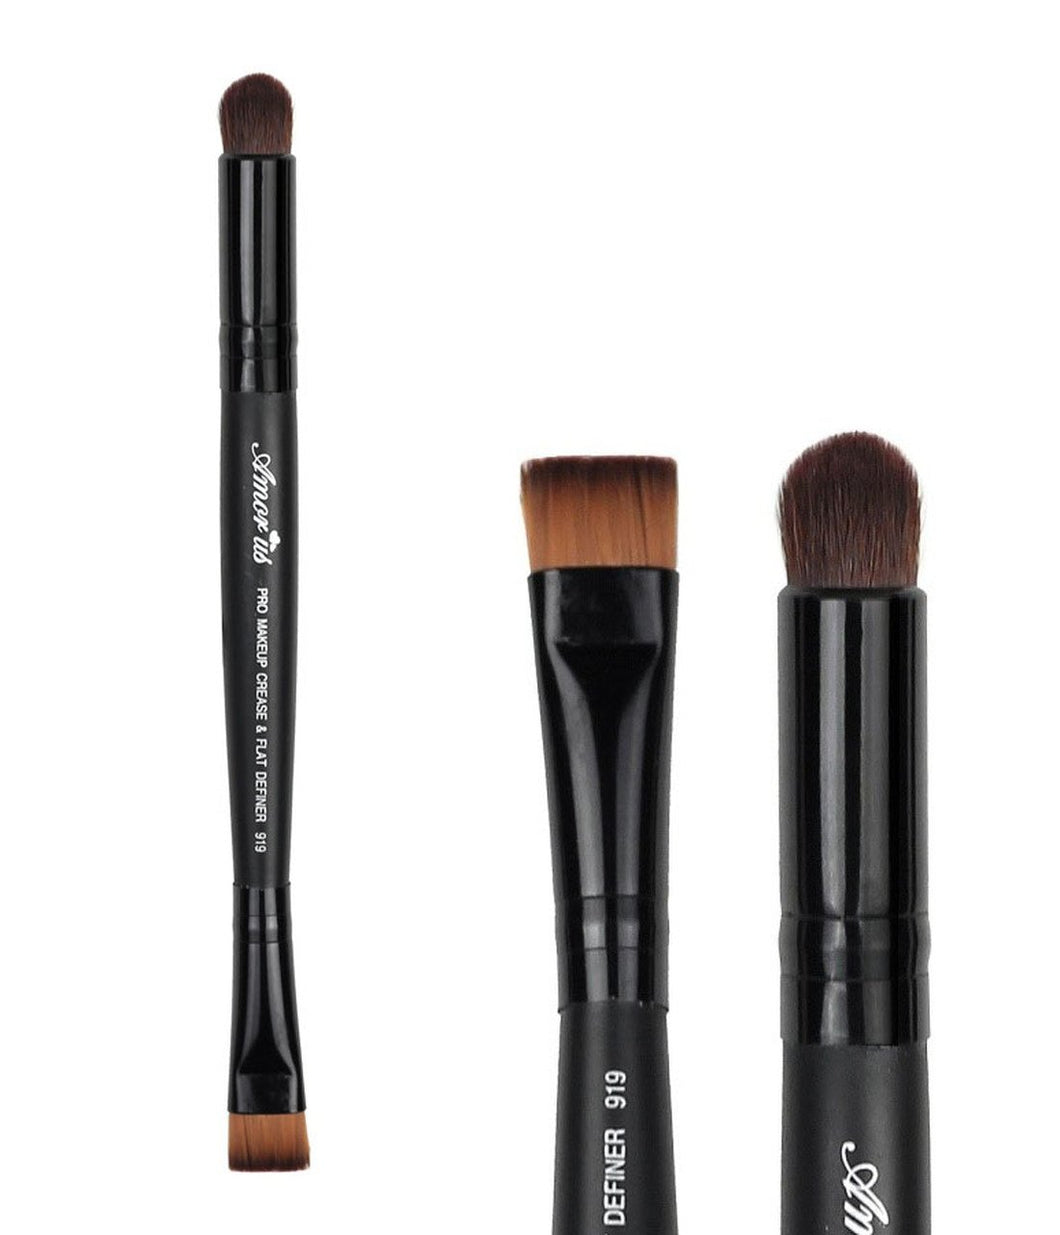 Professional Deluxe Crease & Flat Definer Brush